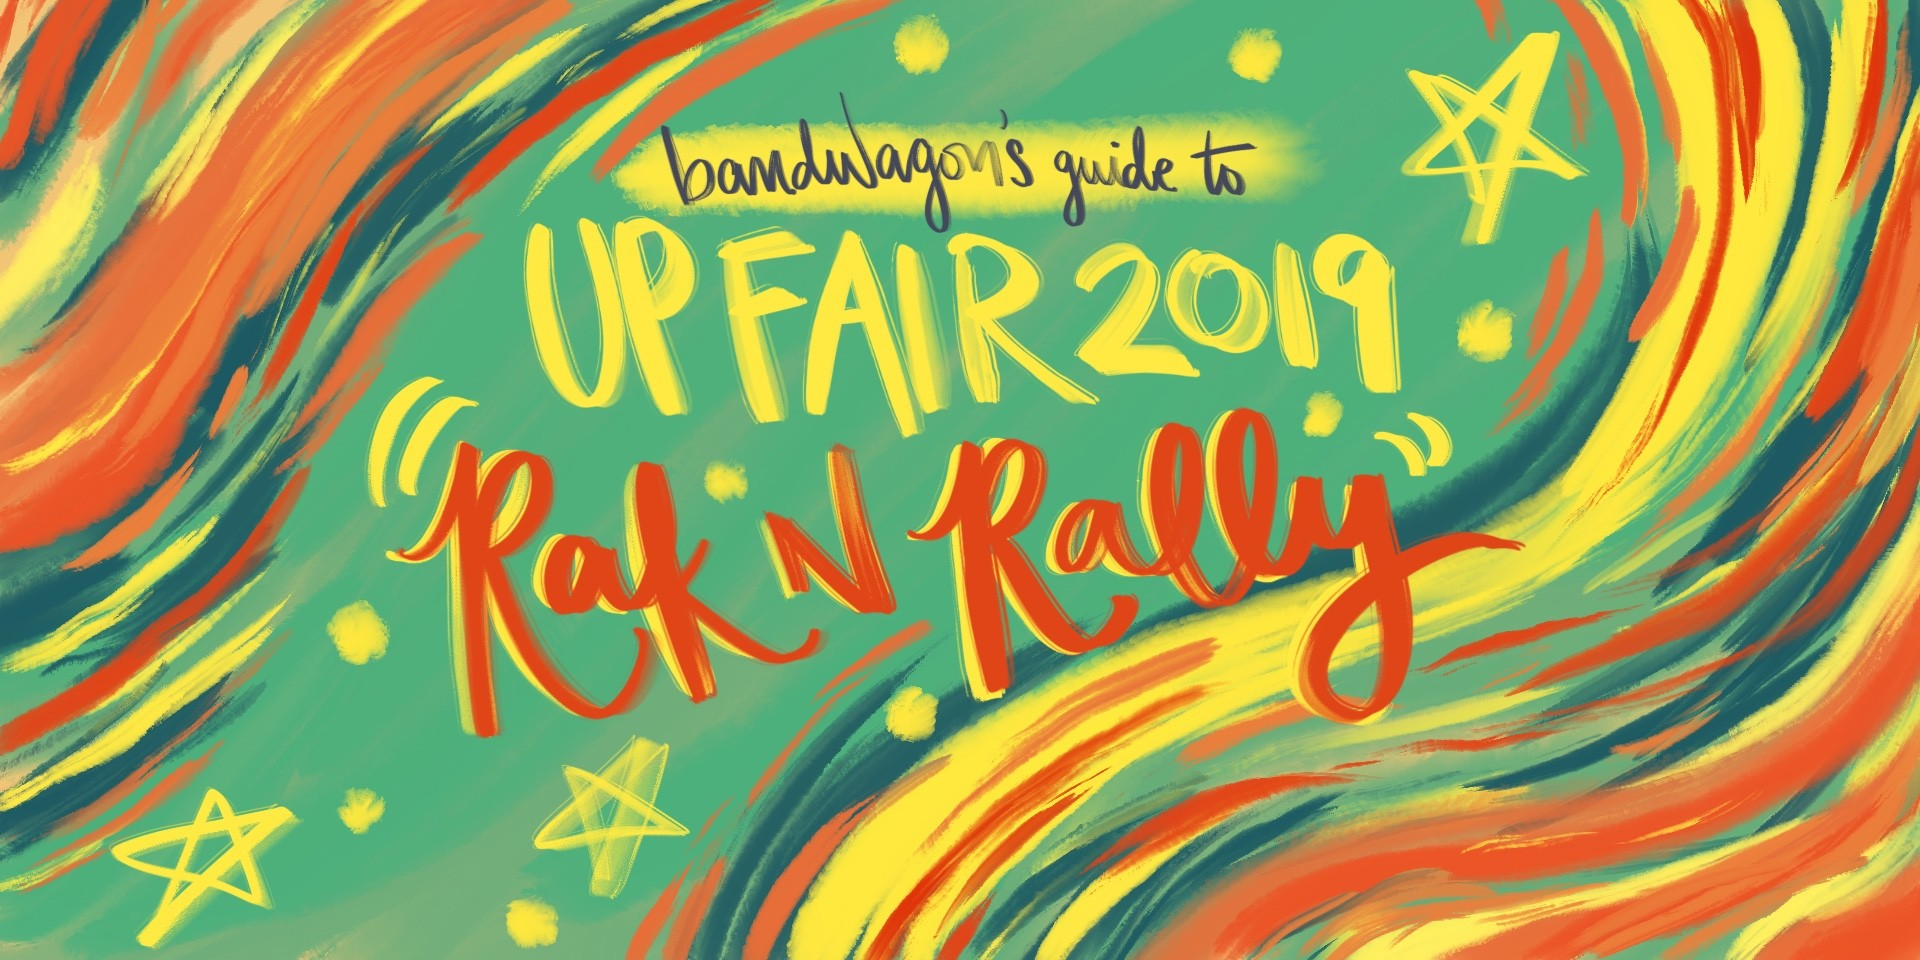 Bandwagon's Guide to UP Fair 2019